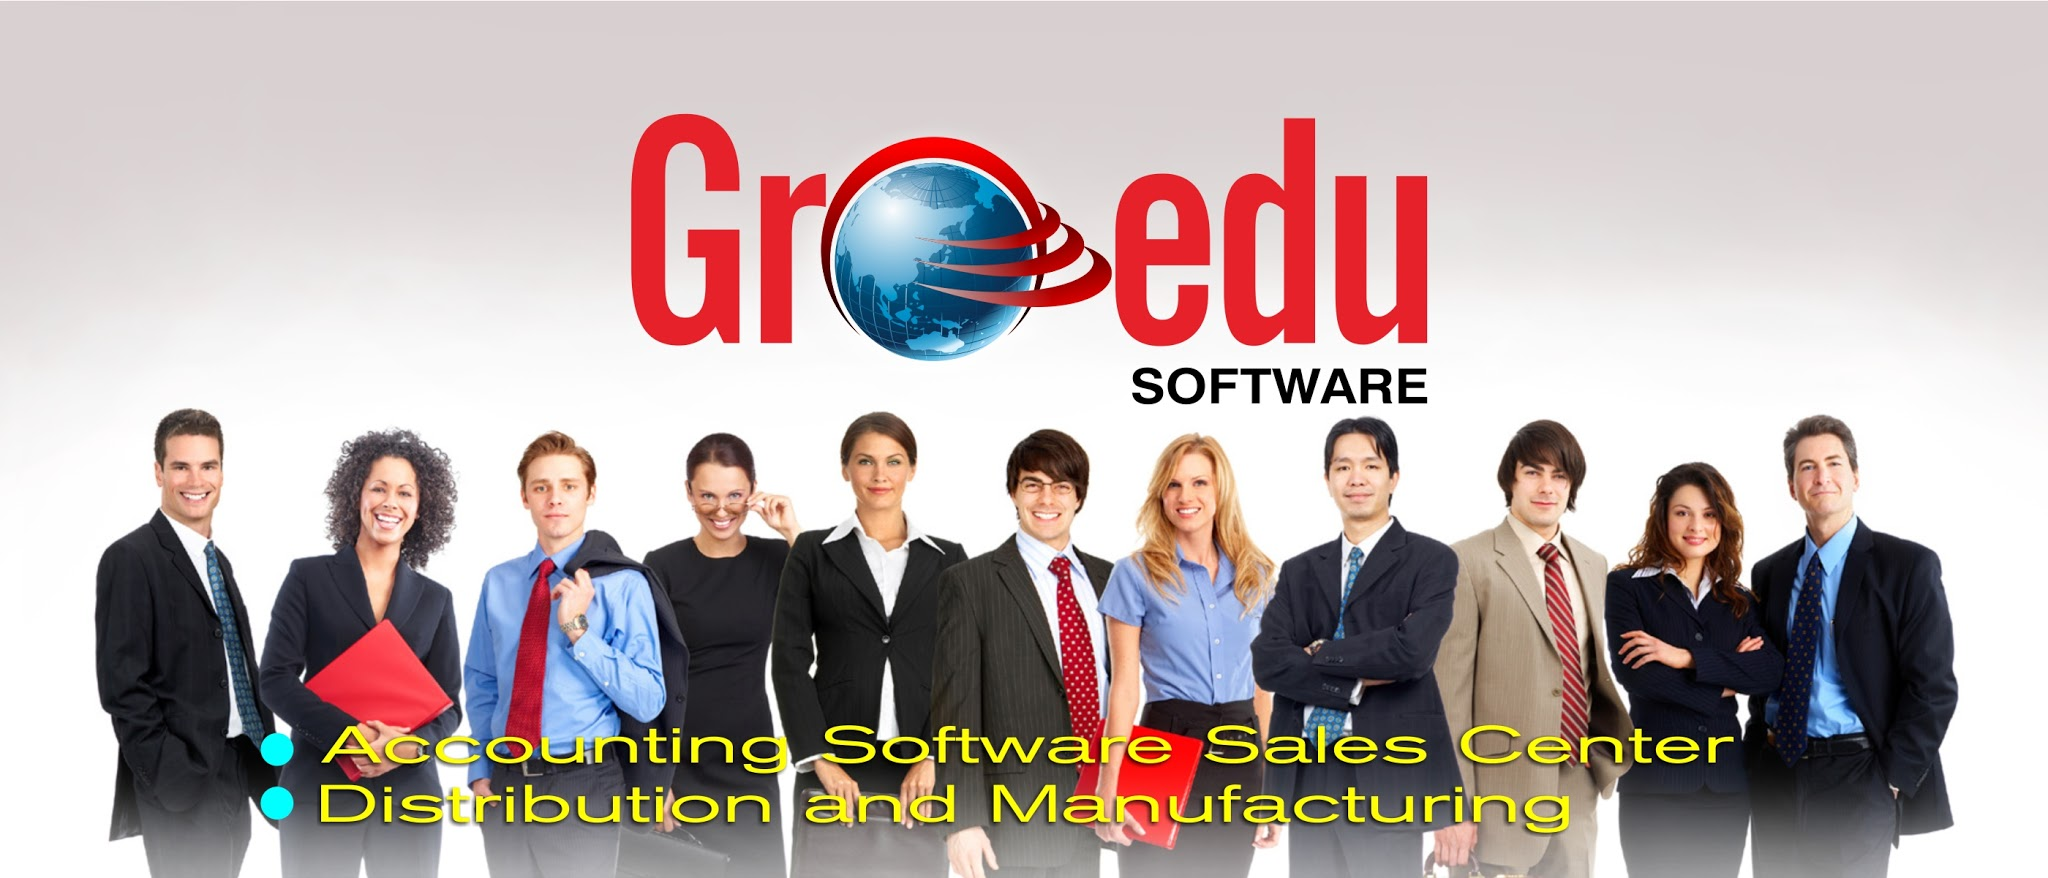 Software Accounting 700 x 300 px-3